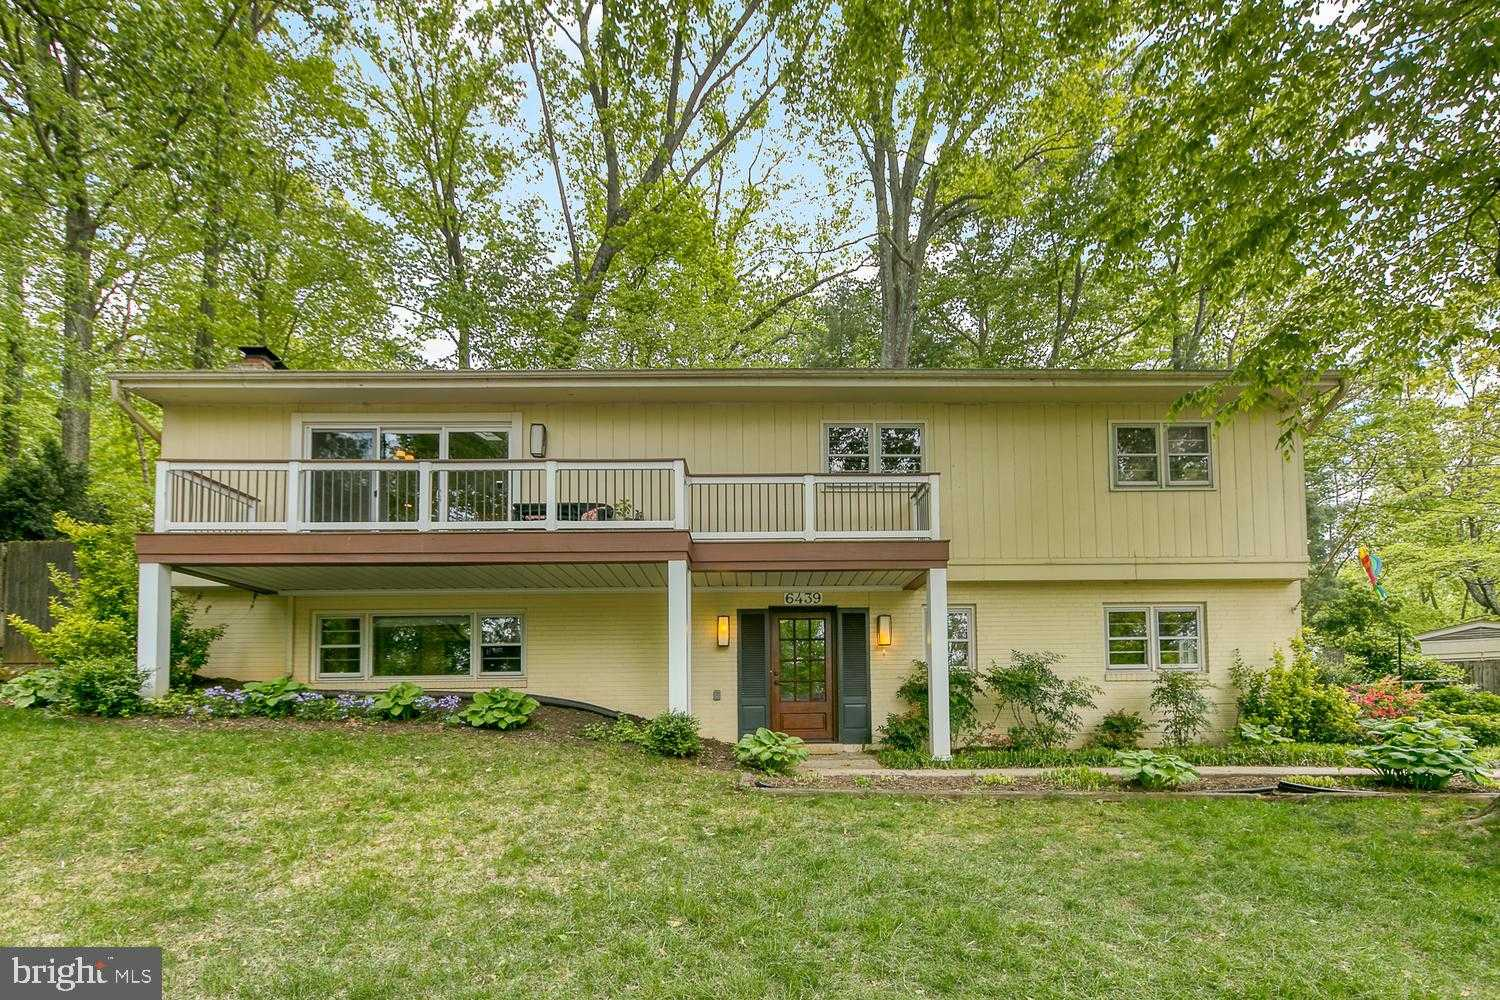 $875,000 - 5Br/3Ba -  for Sale in Lake Barcroft, Falls Church